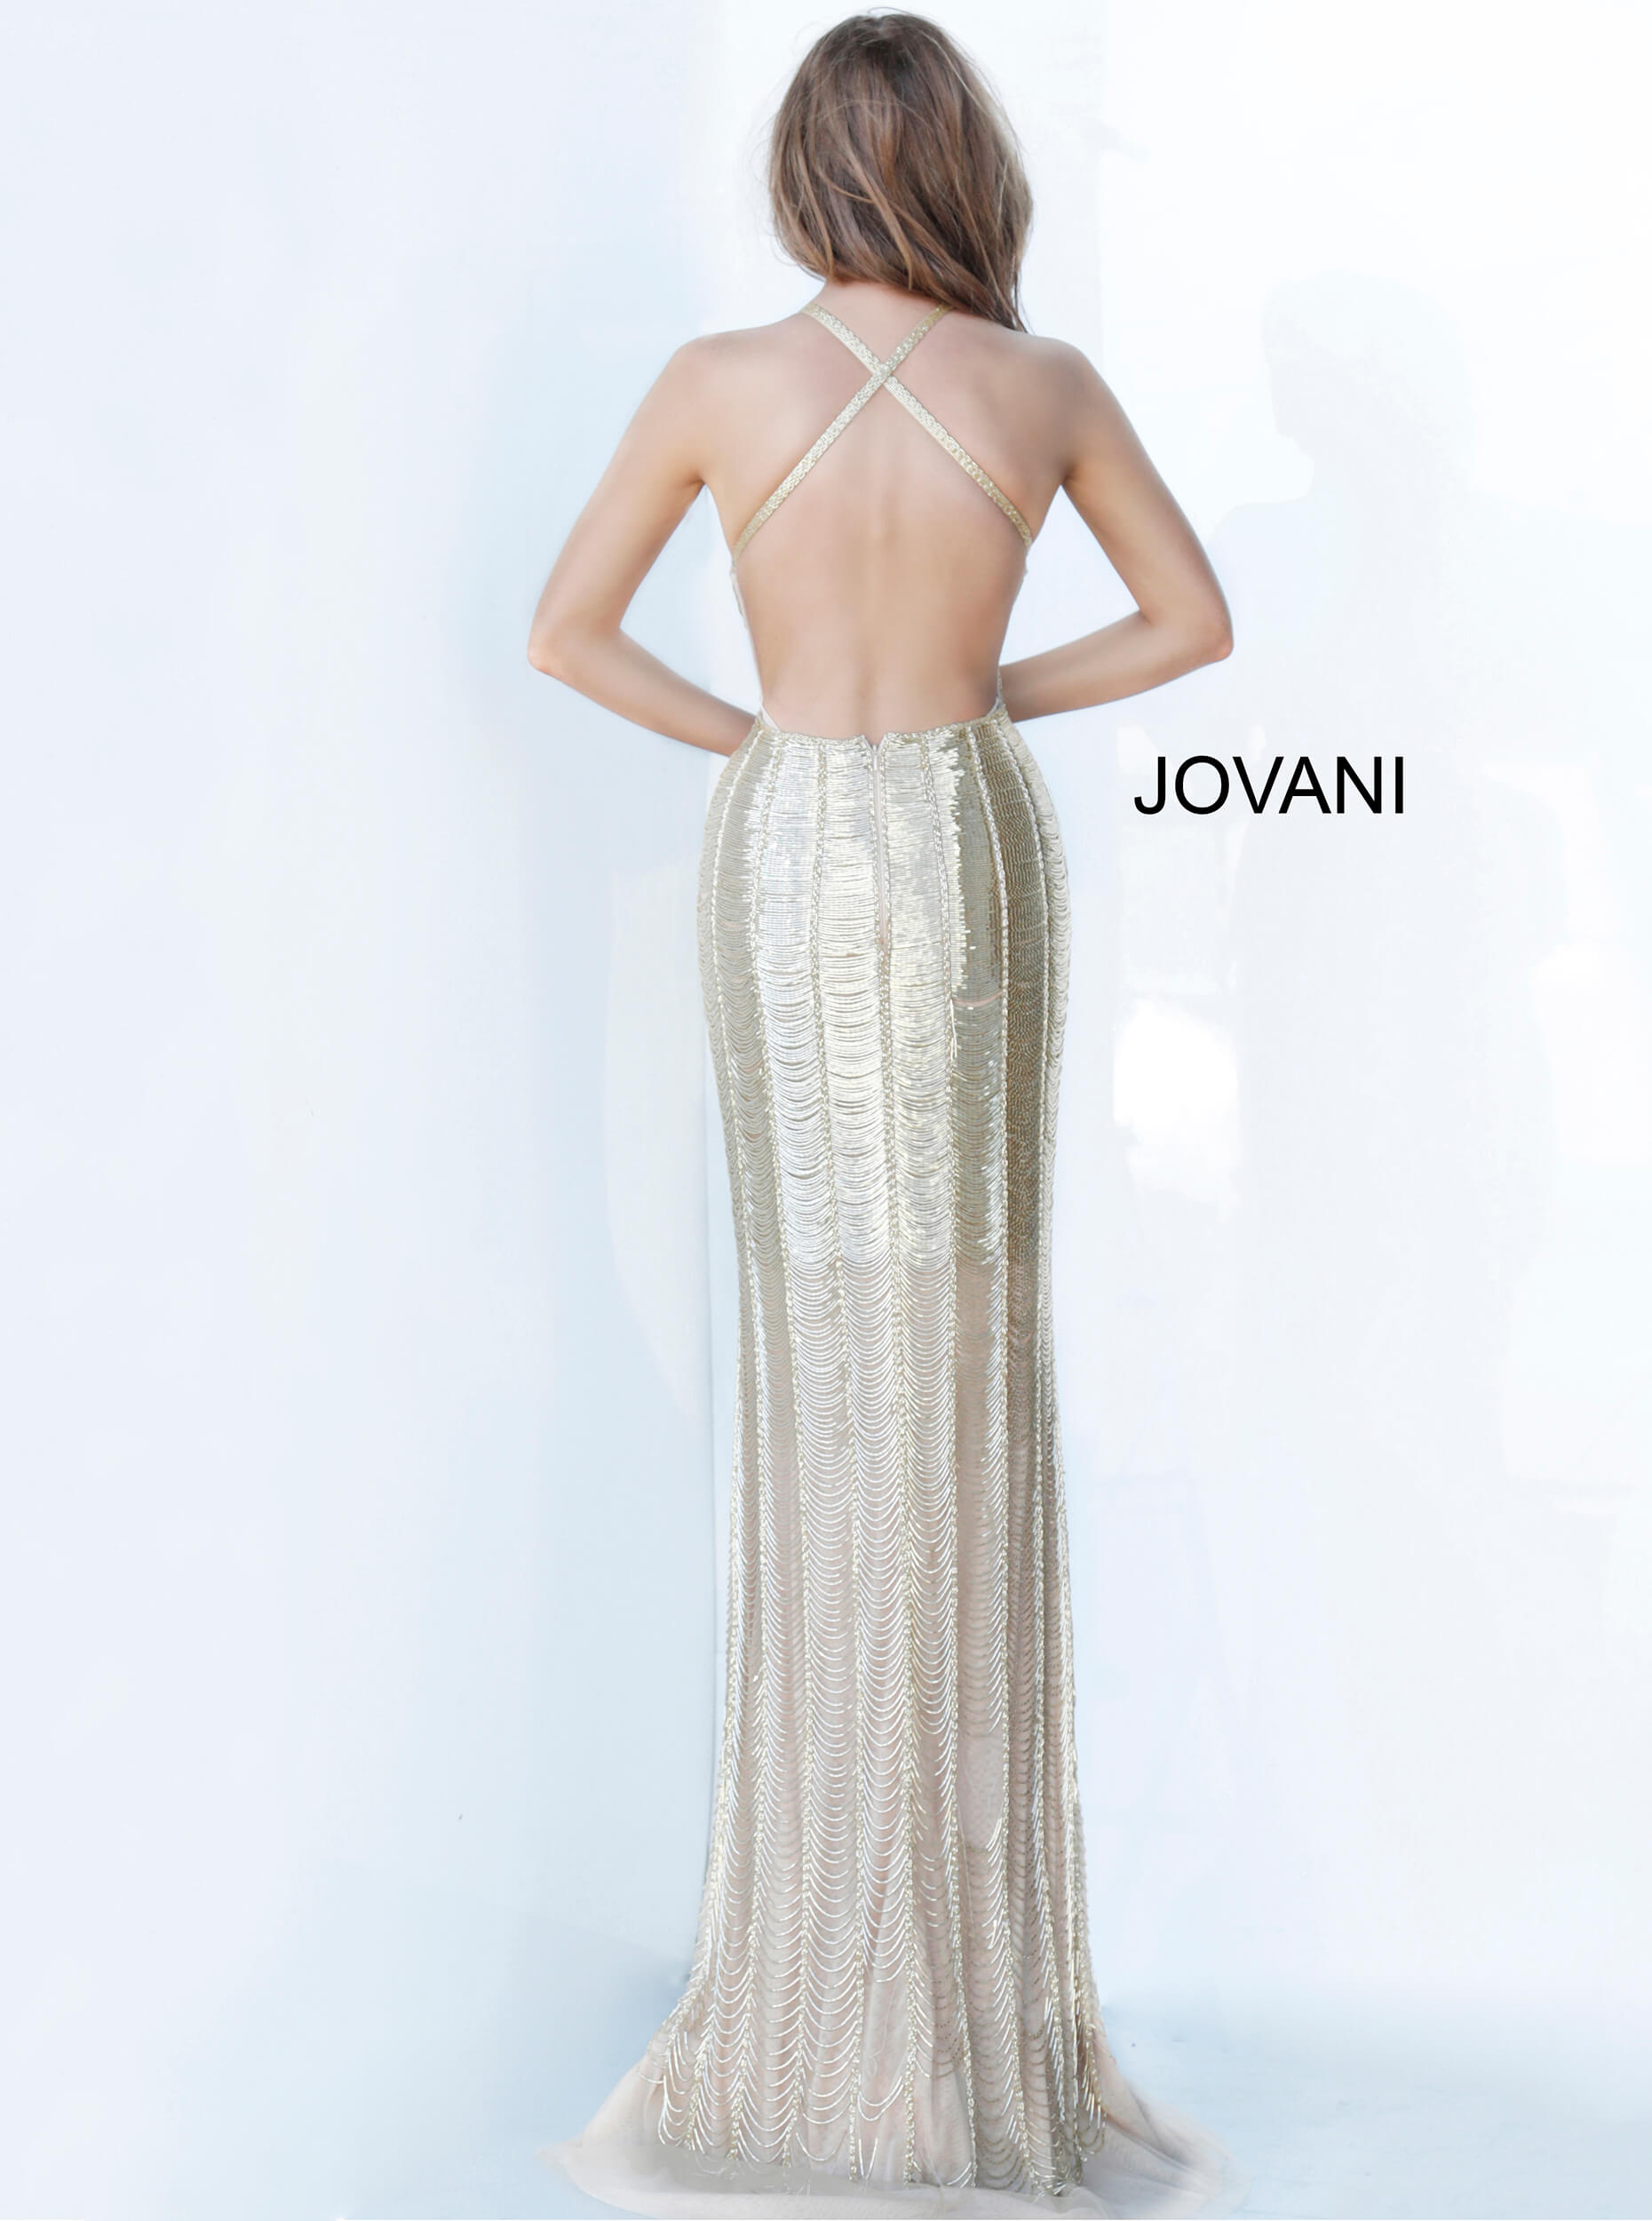 Nude criss cross back evening dress Jovani 4076 on mobile 3